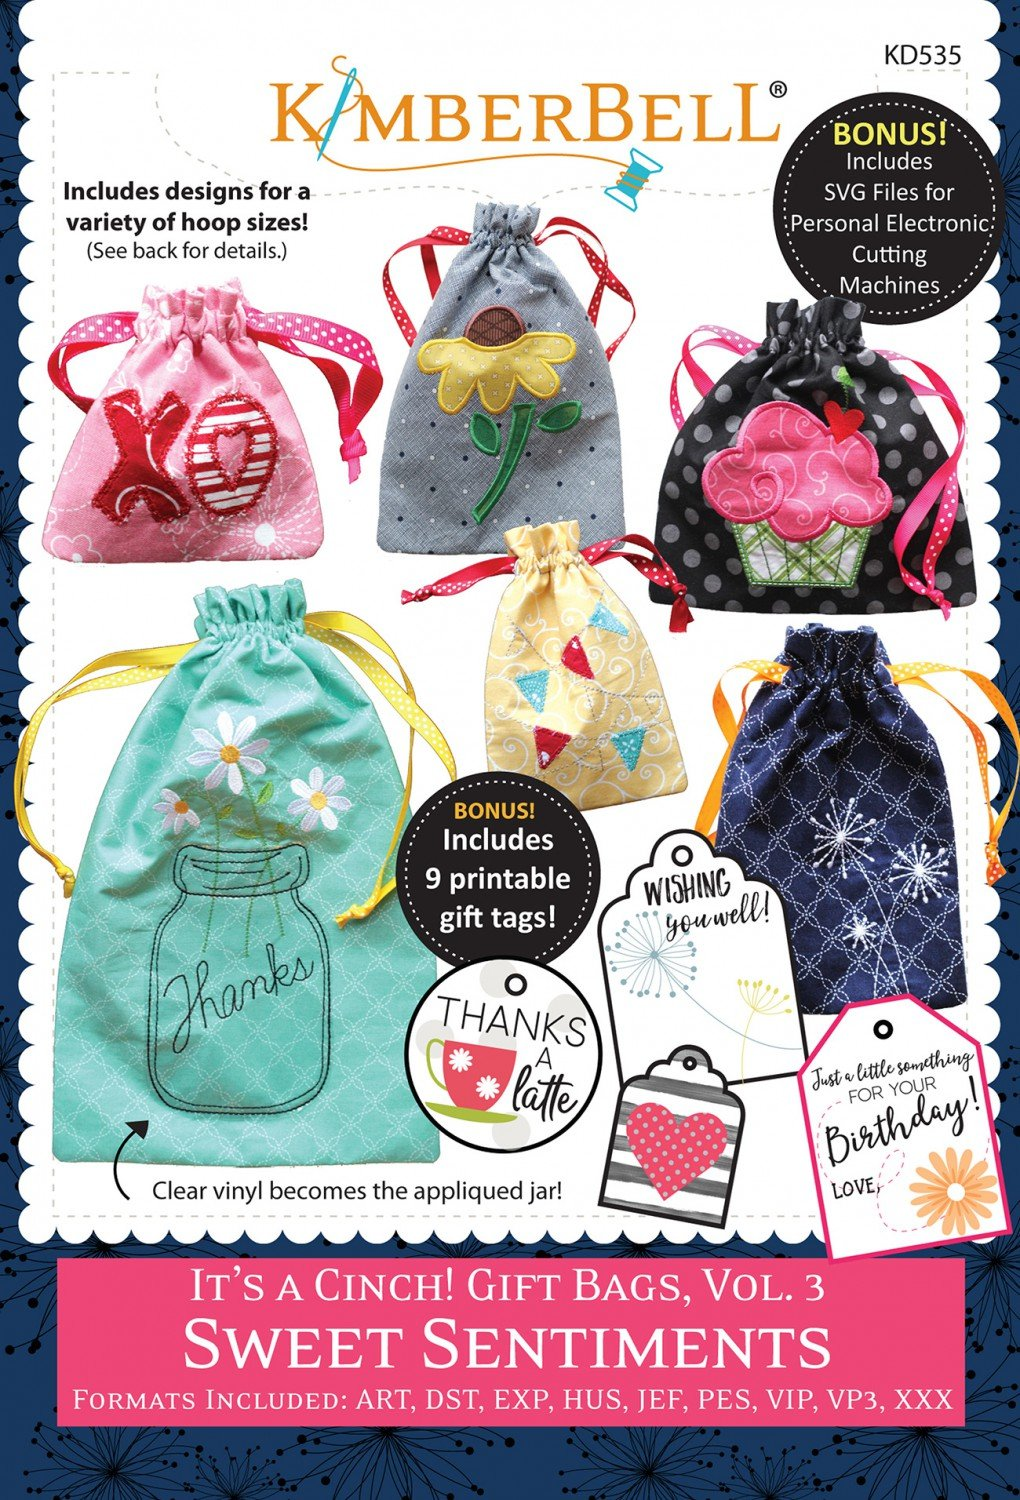 It's a Cinch Gift Bags Volume 3 Sweet Sentiments CD